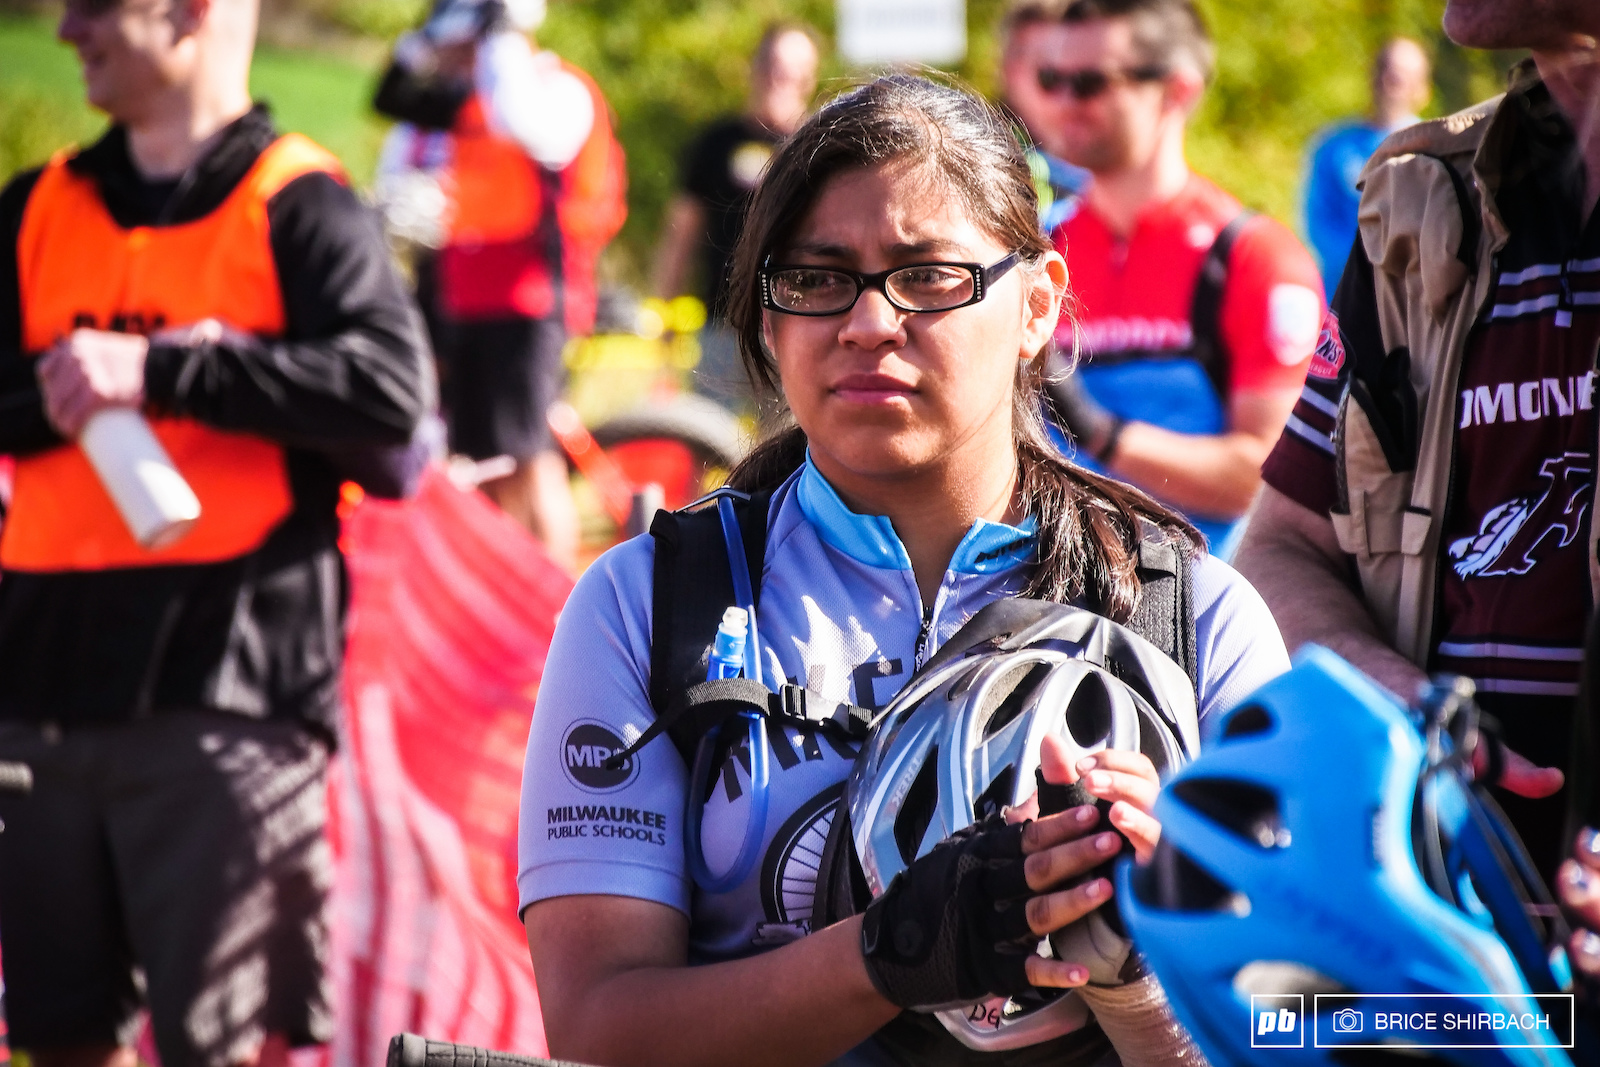 Photos from the NICA event held on Trek s private trails.